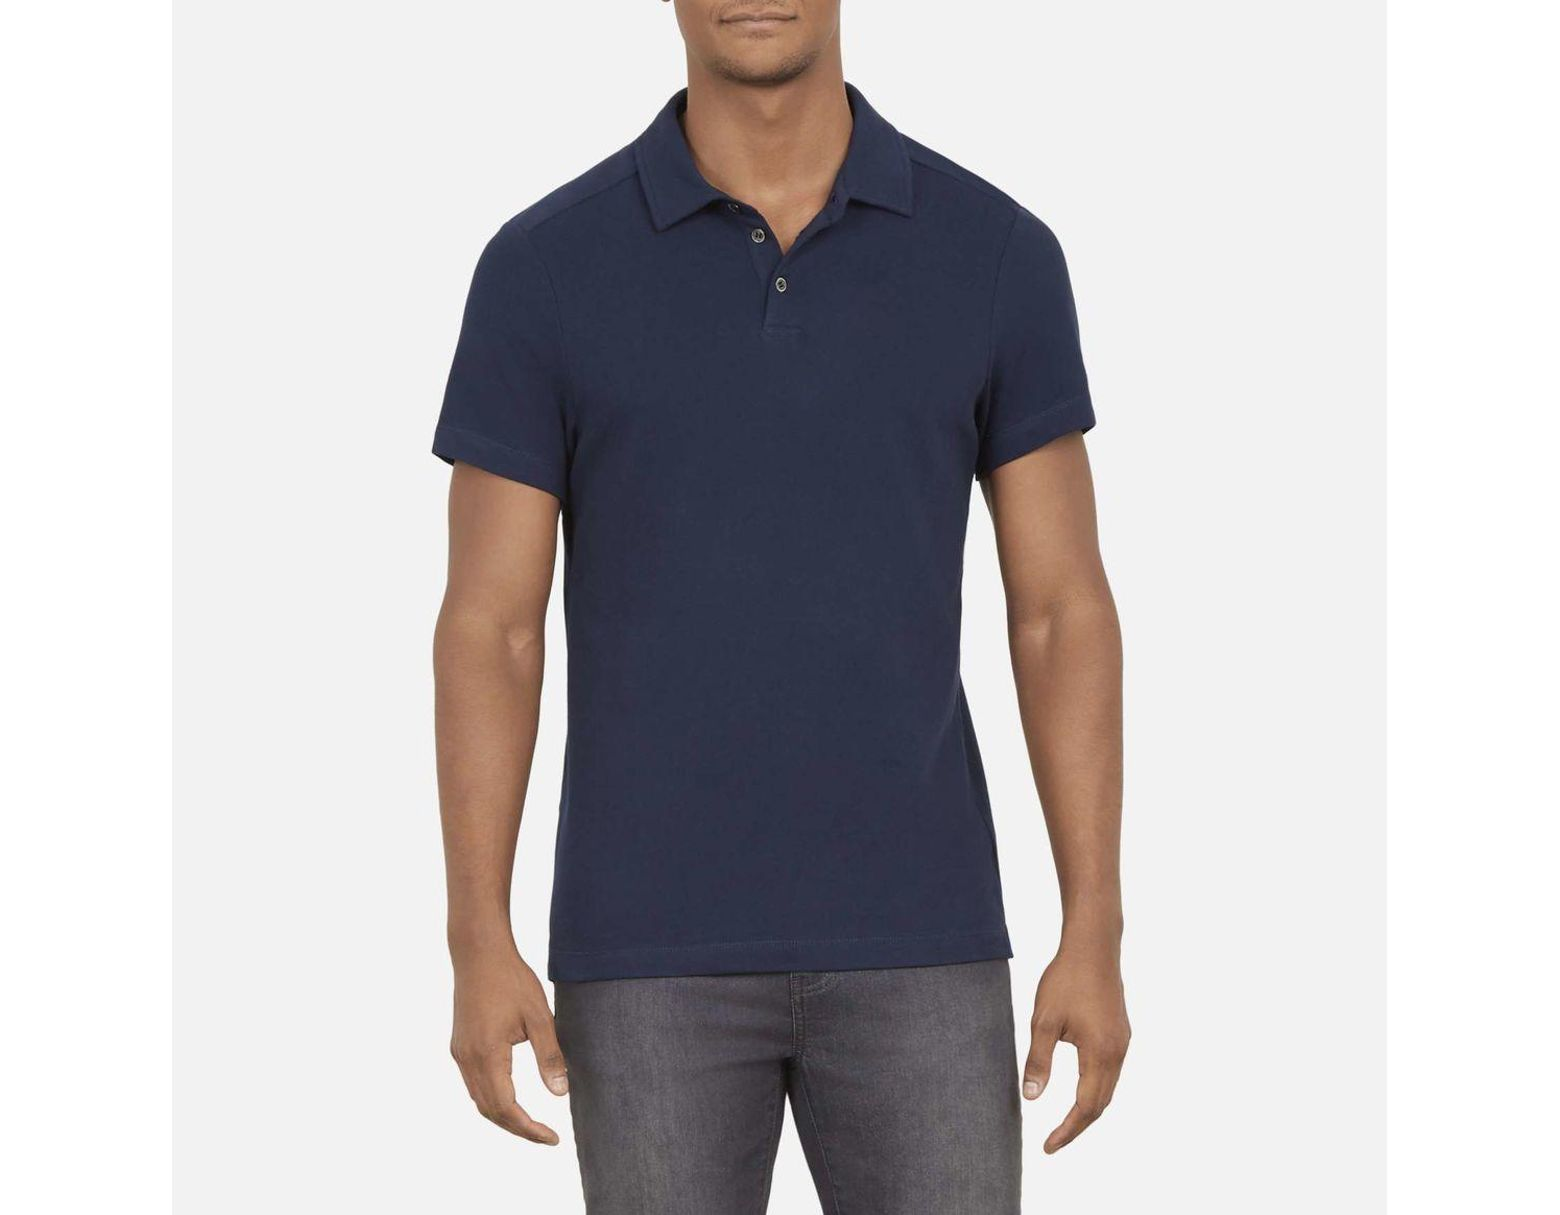 e3ded7a67 Kenneth Cole Solid Short Sleeved Polo Shirt In Stretch Cotton in Blue for  Men - Lyst